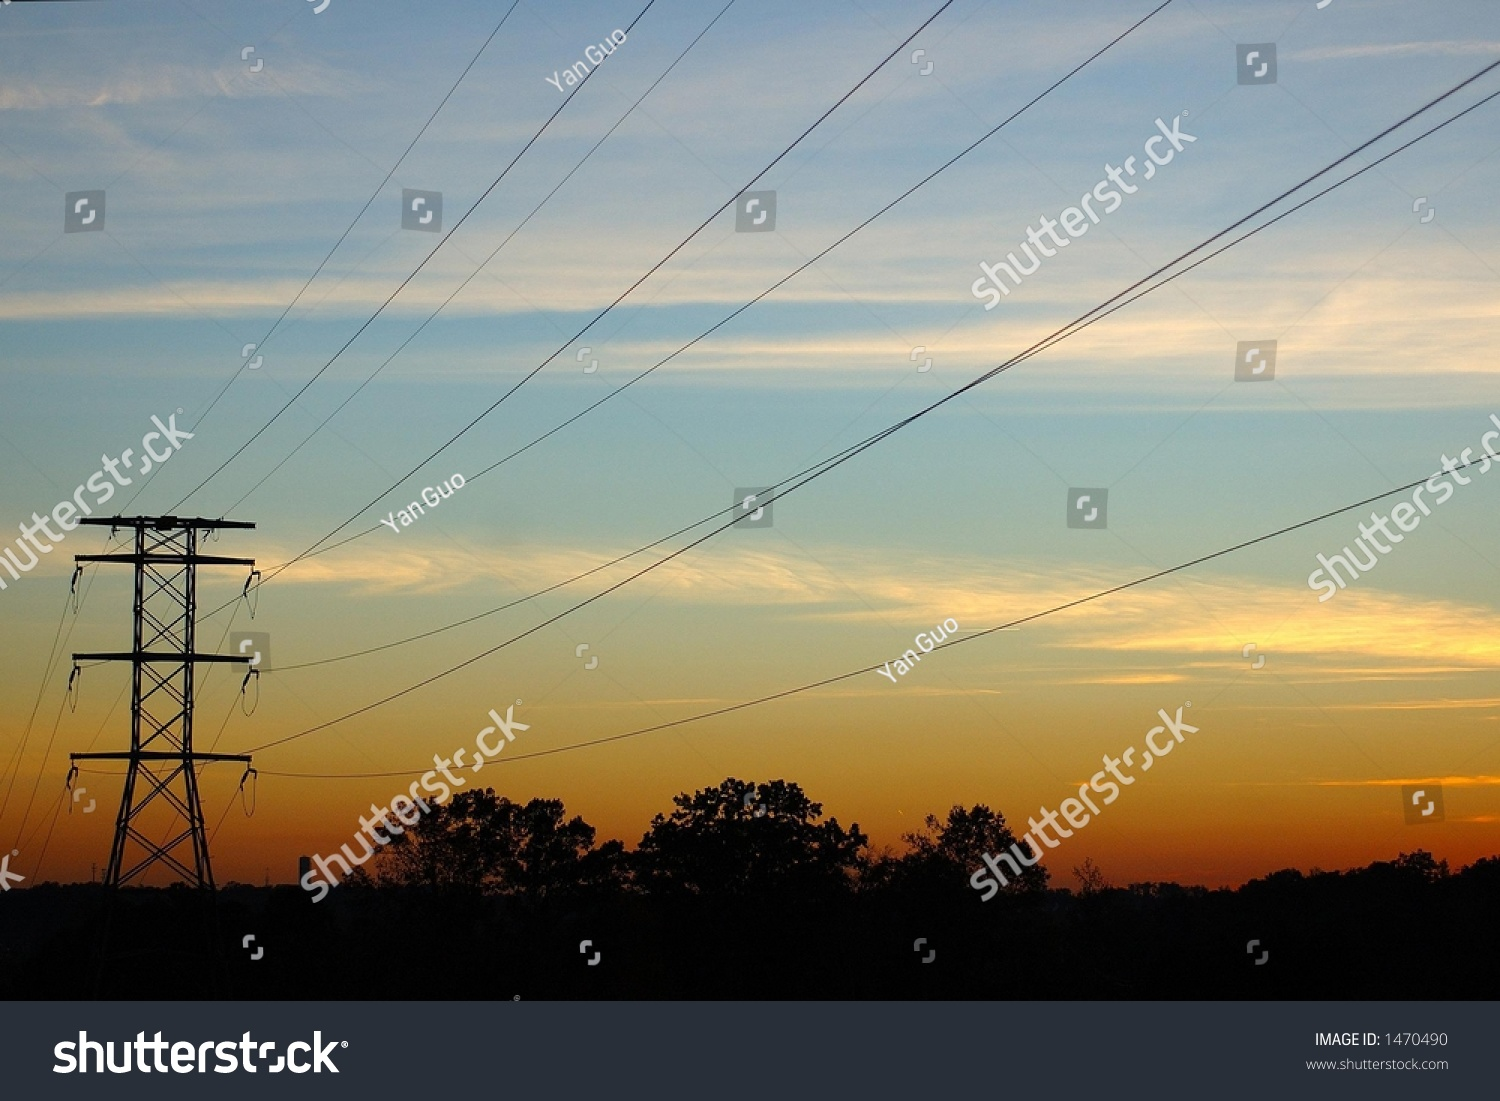 High-Voltage Electronic Power Lines In Sunset Stock Photo ...